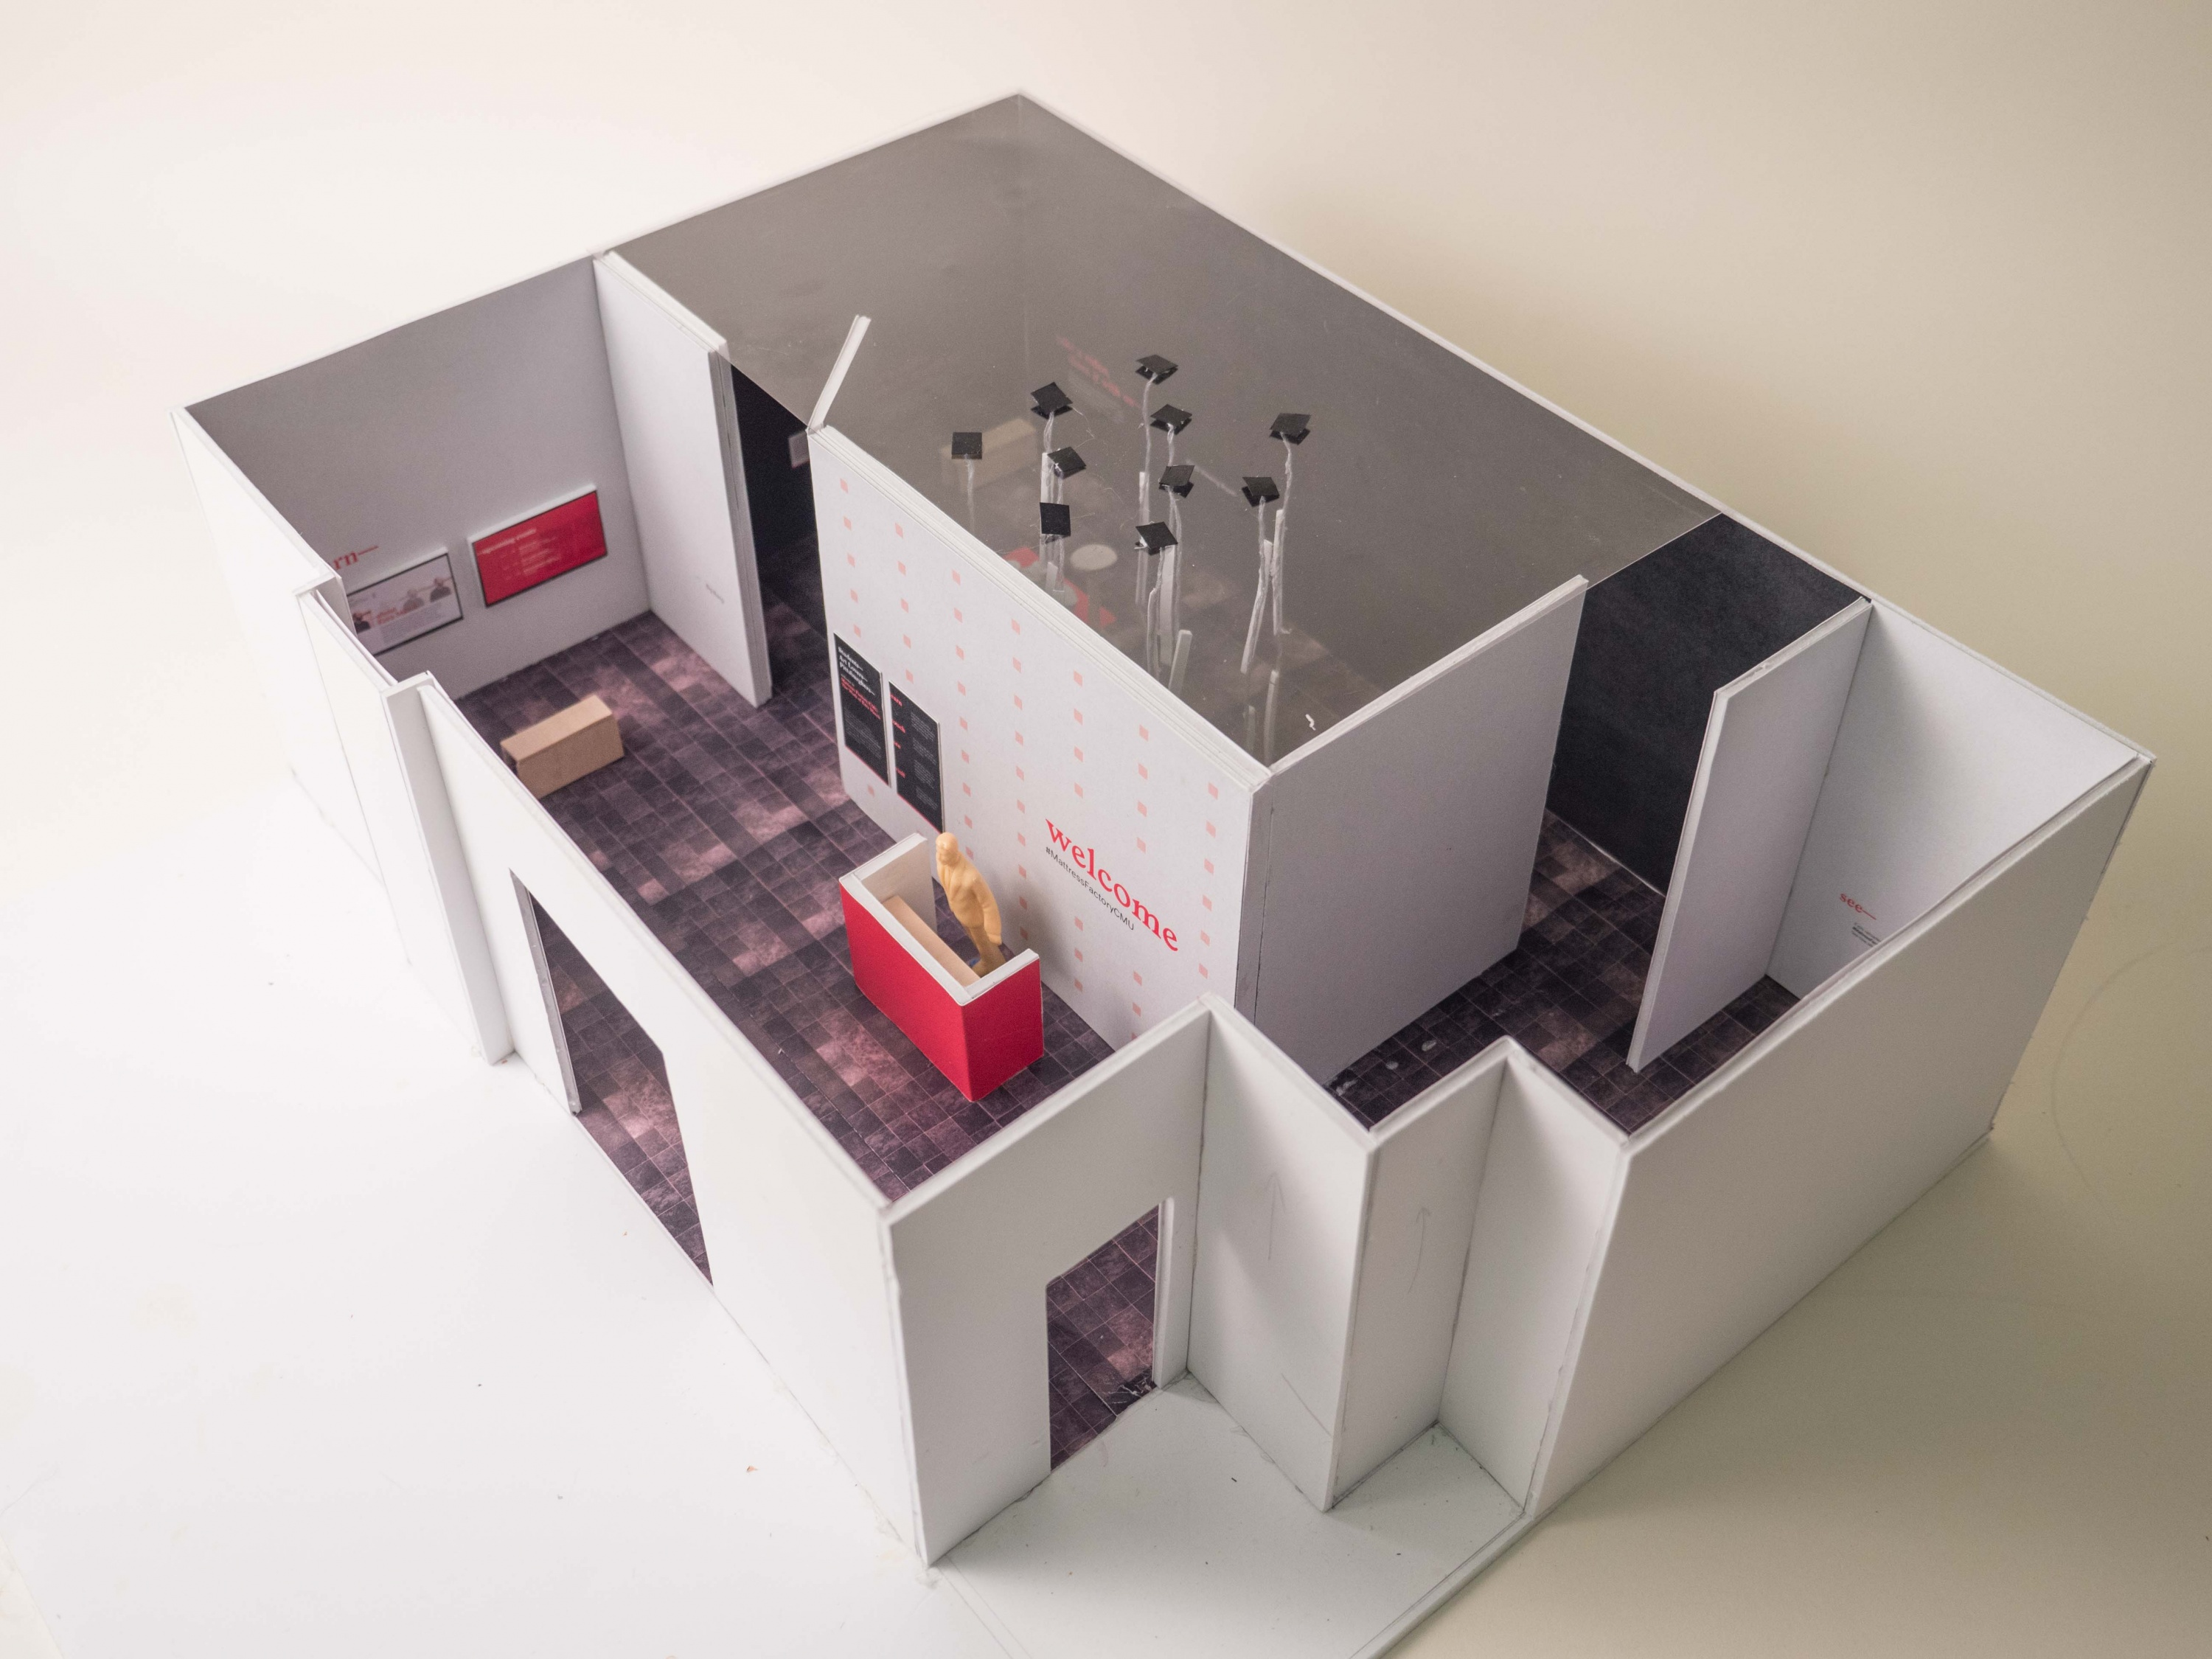 Overview of physical model.